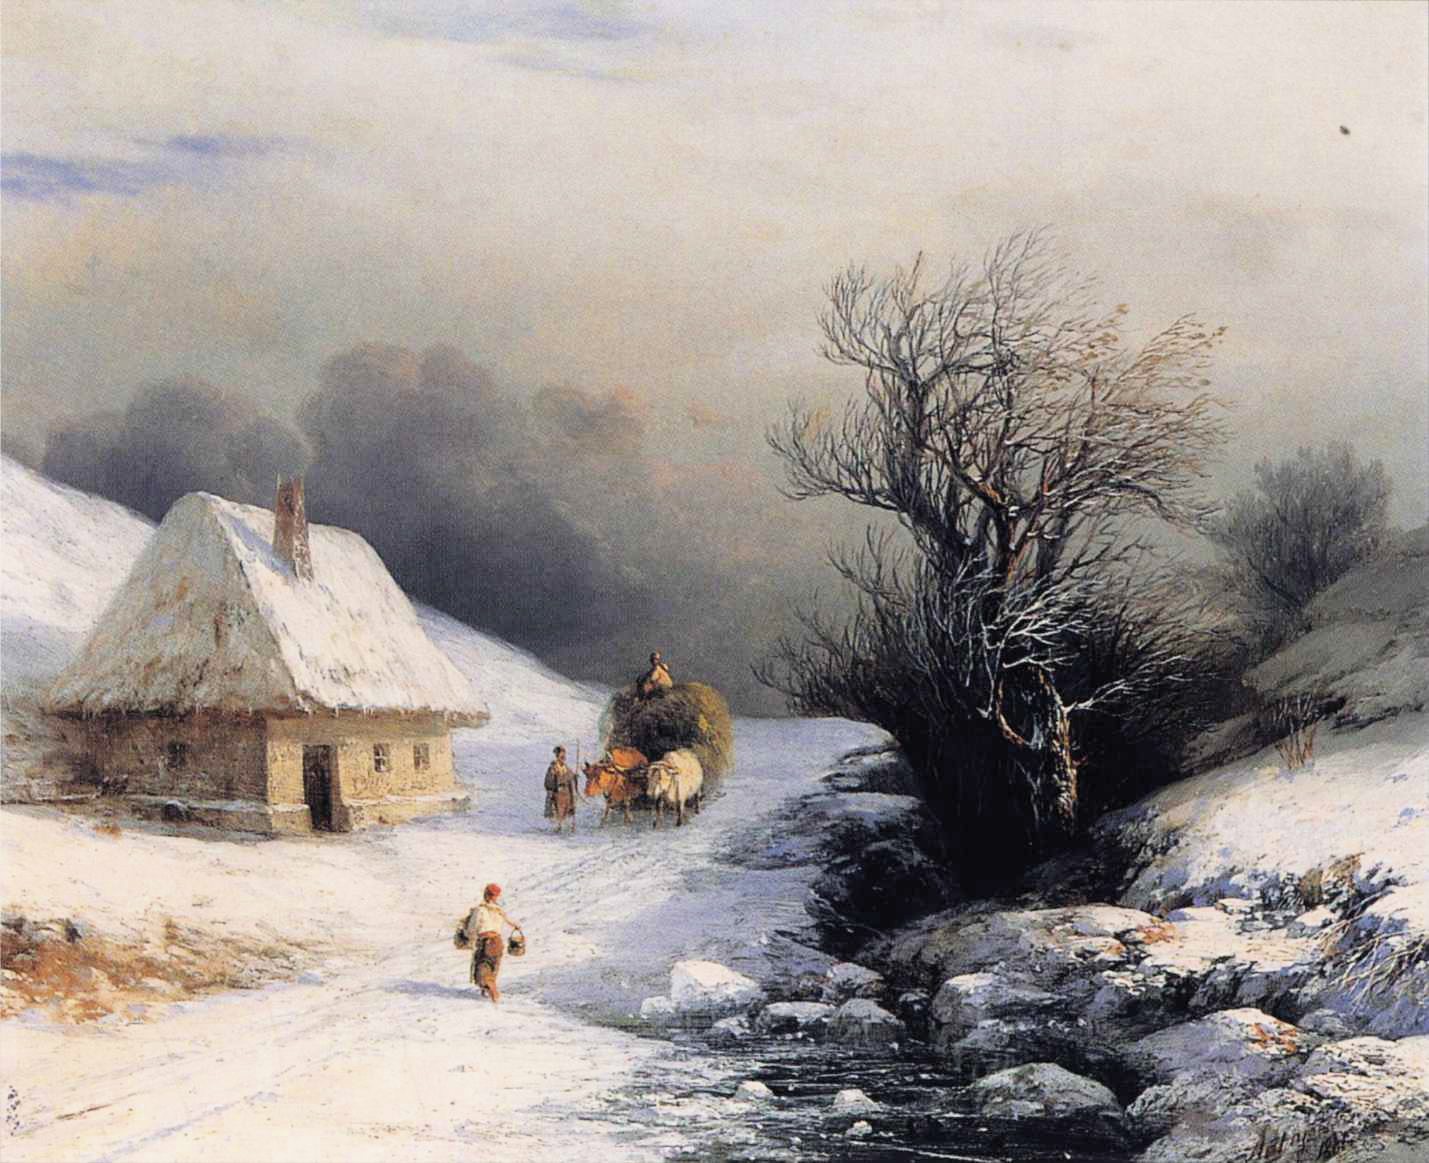 The Glory of Russian Painting Ivan Aivazovsky ctd